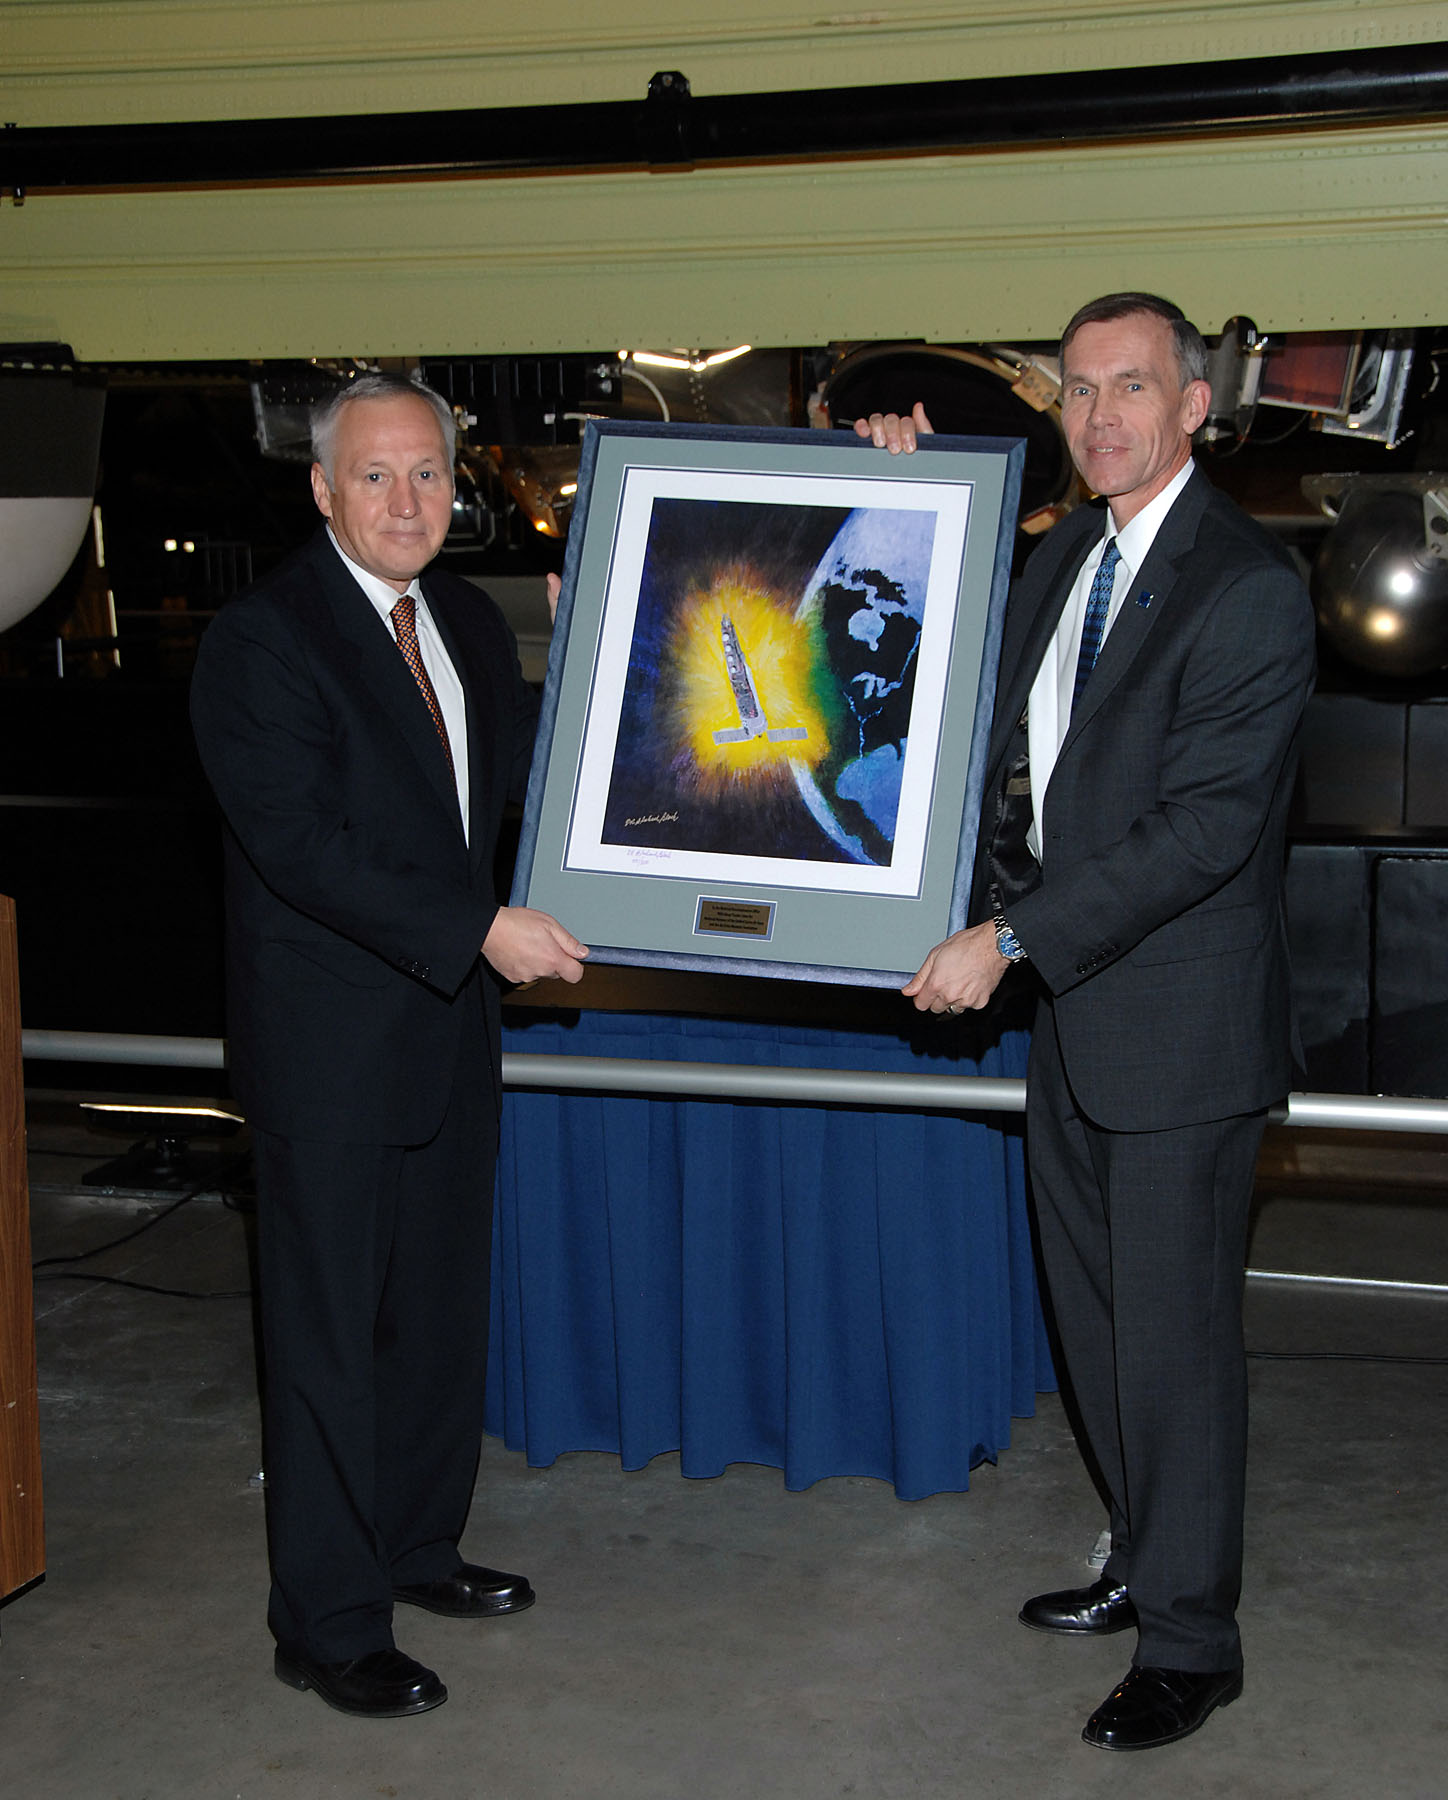 Presentation of a Painting of the Hexagon Satellite